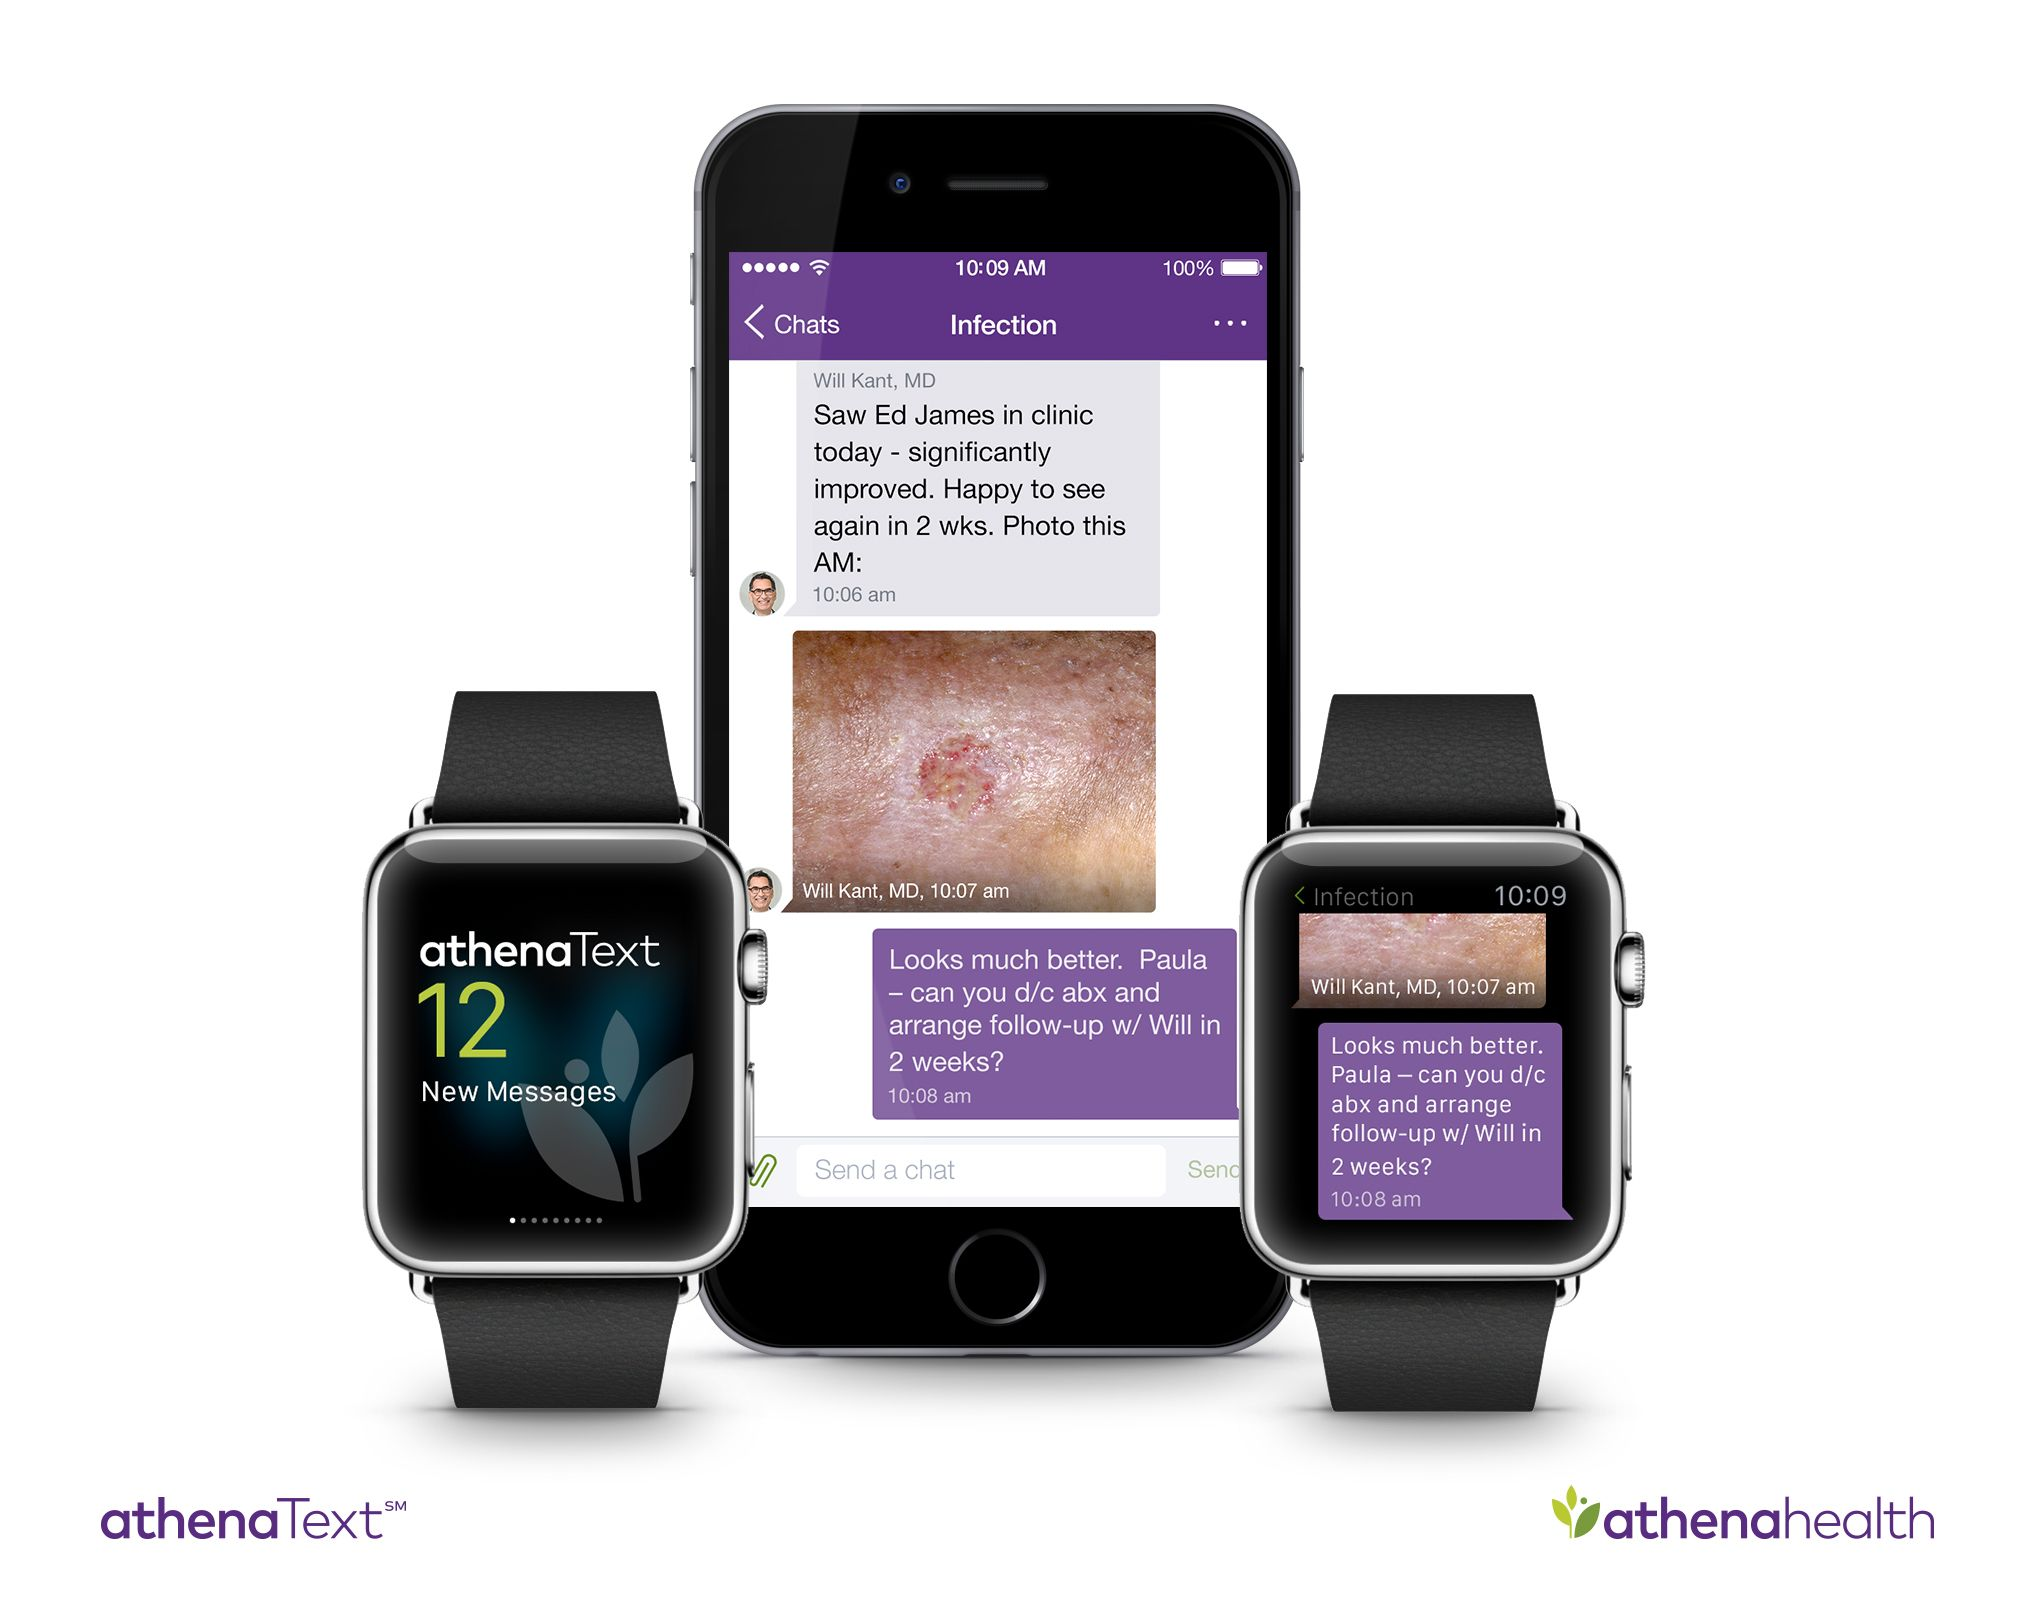 athenahealth Announces athenaText App for Apple Watch